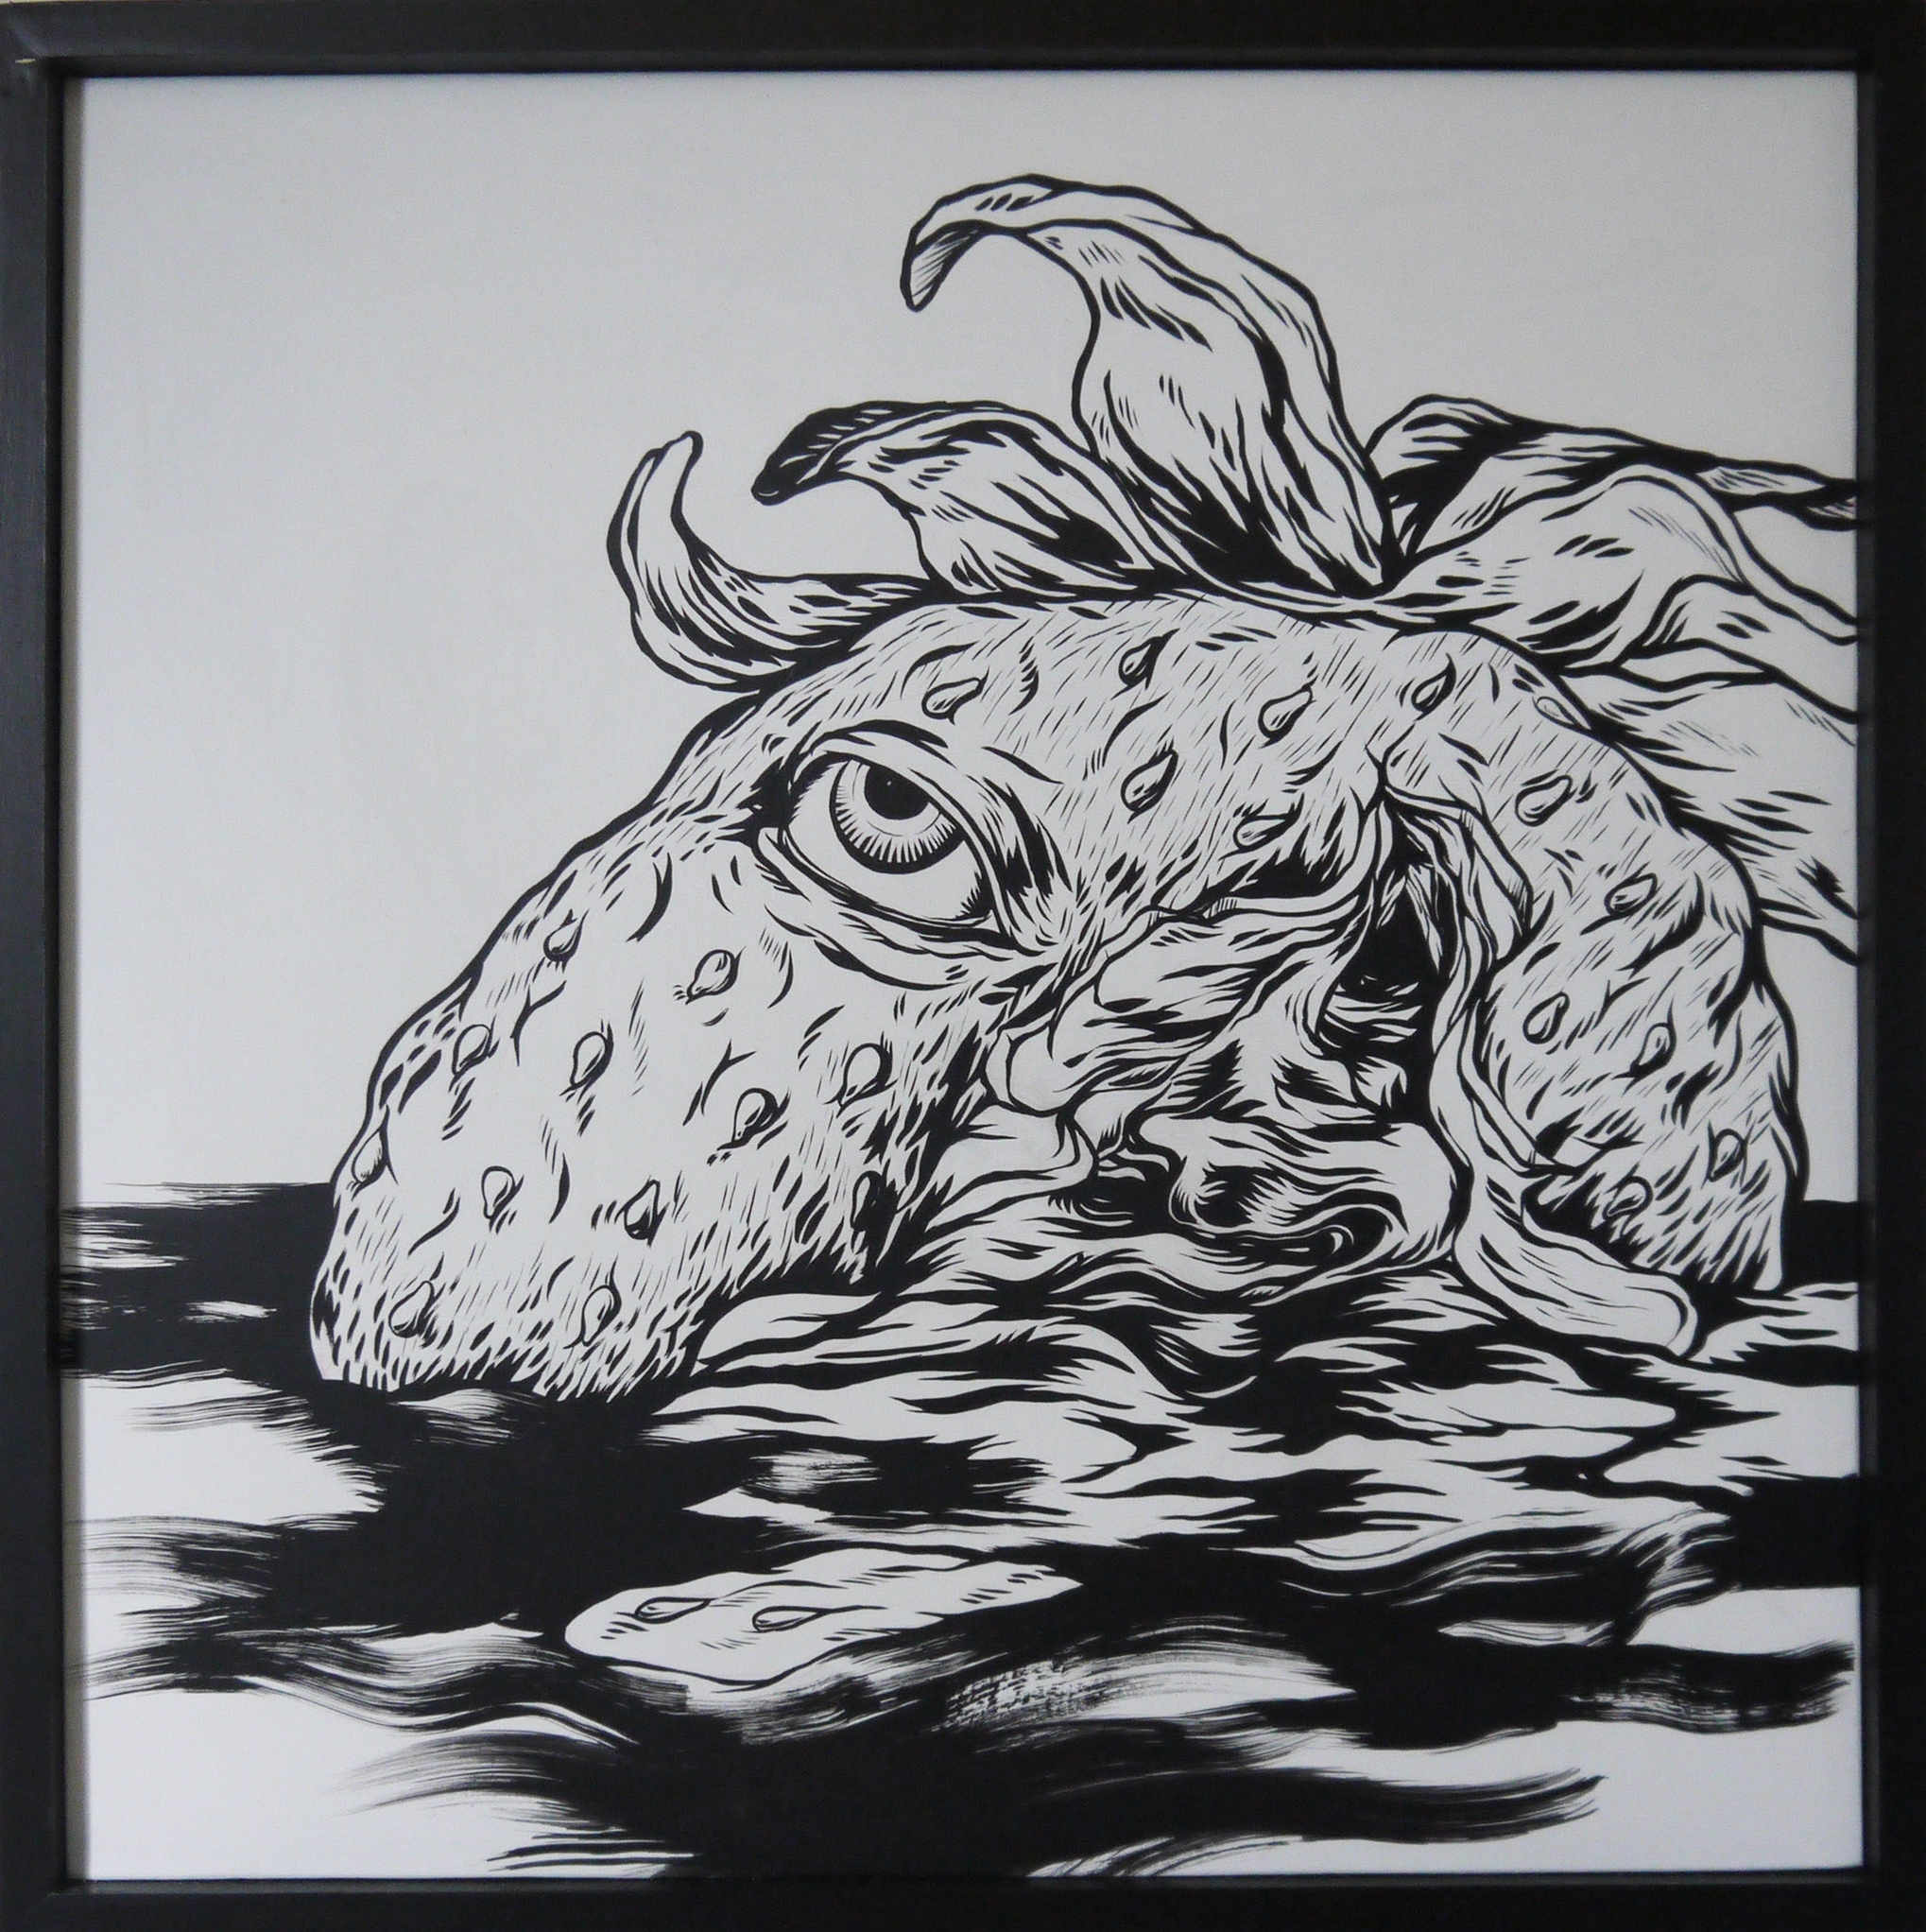 Slayer , 2014 [corporate collection Toronto, Canada] Sumi Ink on Wood 24 x 24 in.